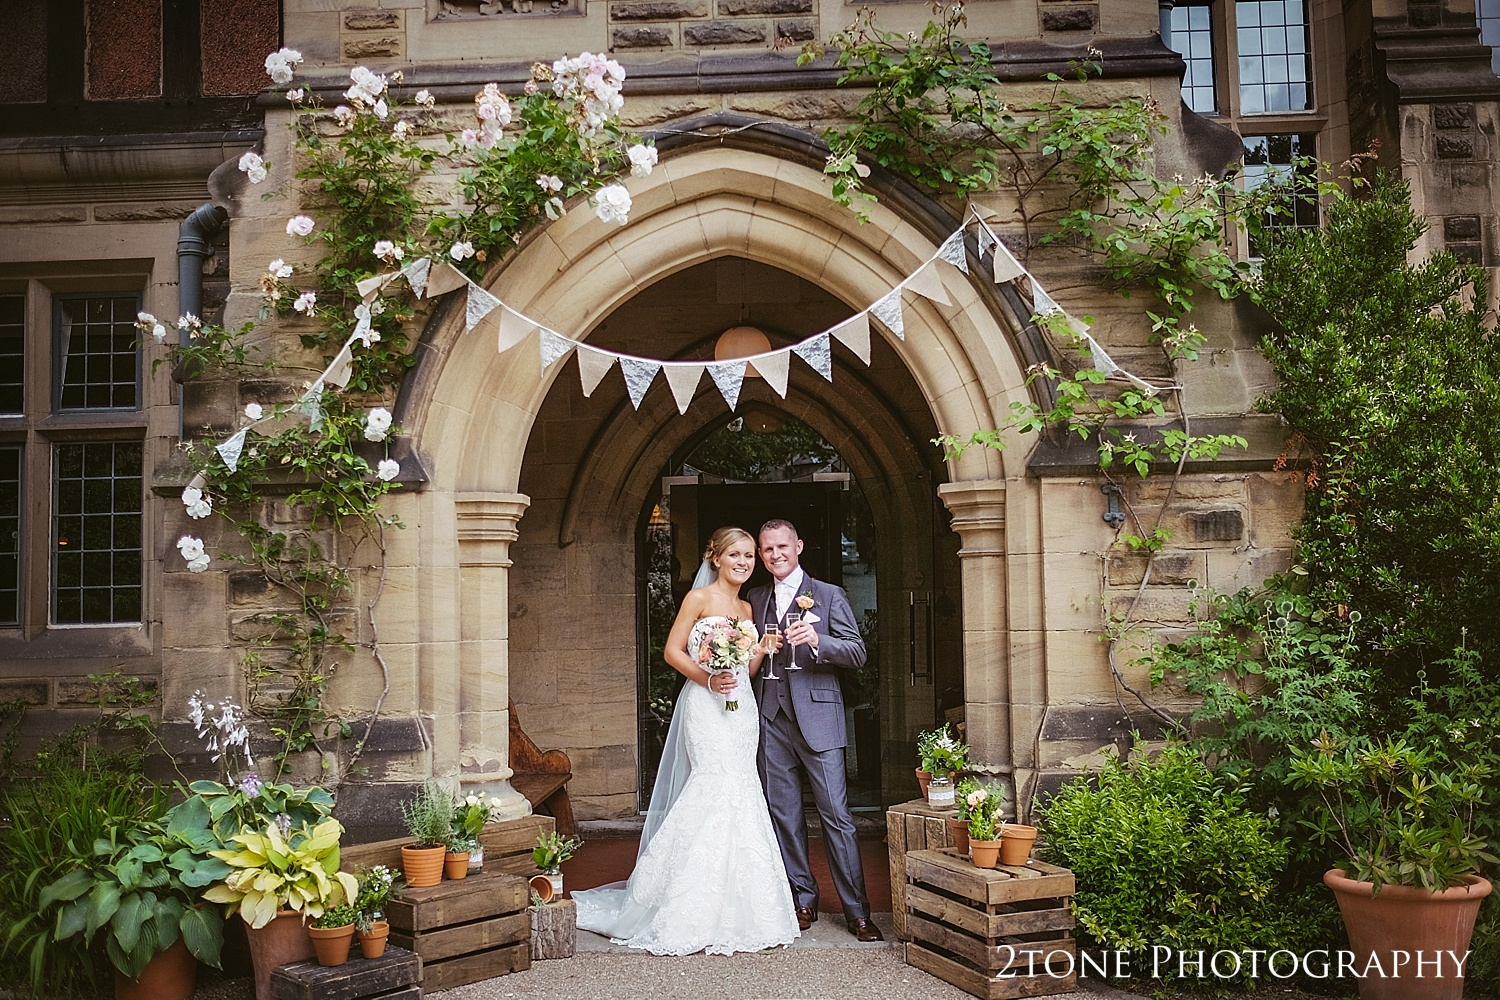 Jesmond Dene House Newcastle wedding photography www.2tonephotography.co.uk